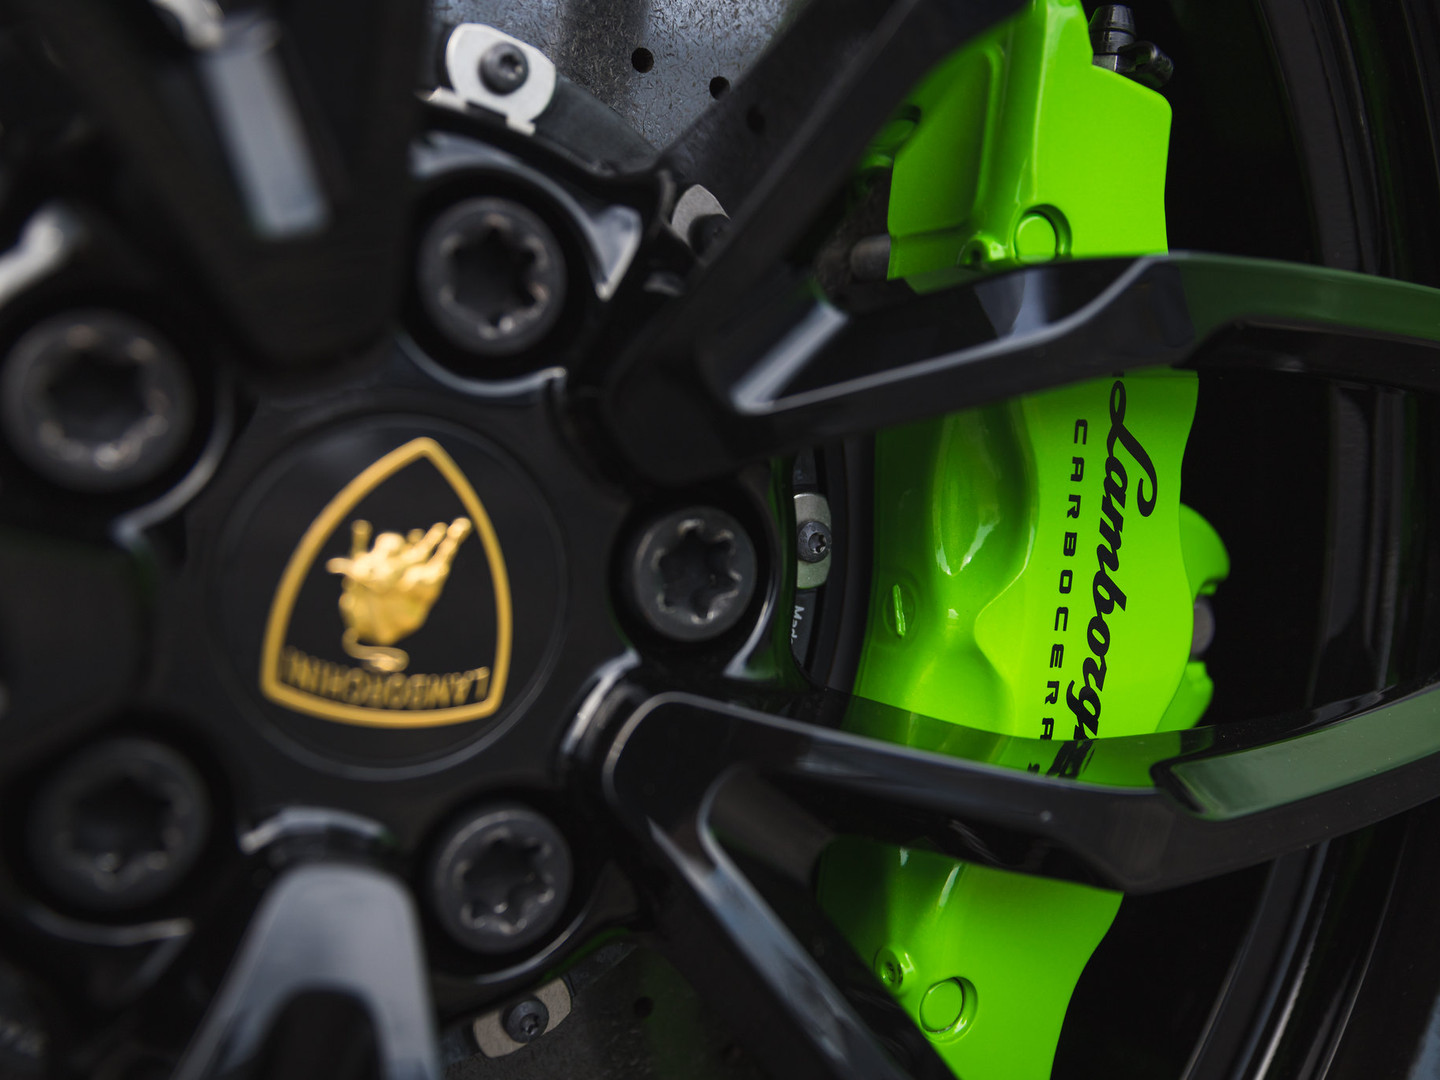 Lamborghini huracan wheel powder coated gloss black